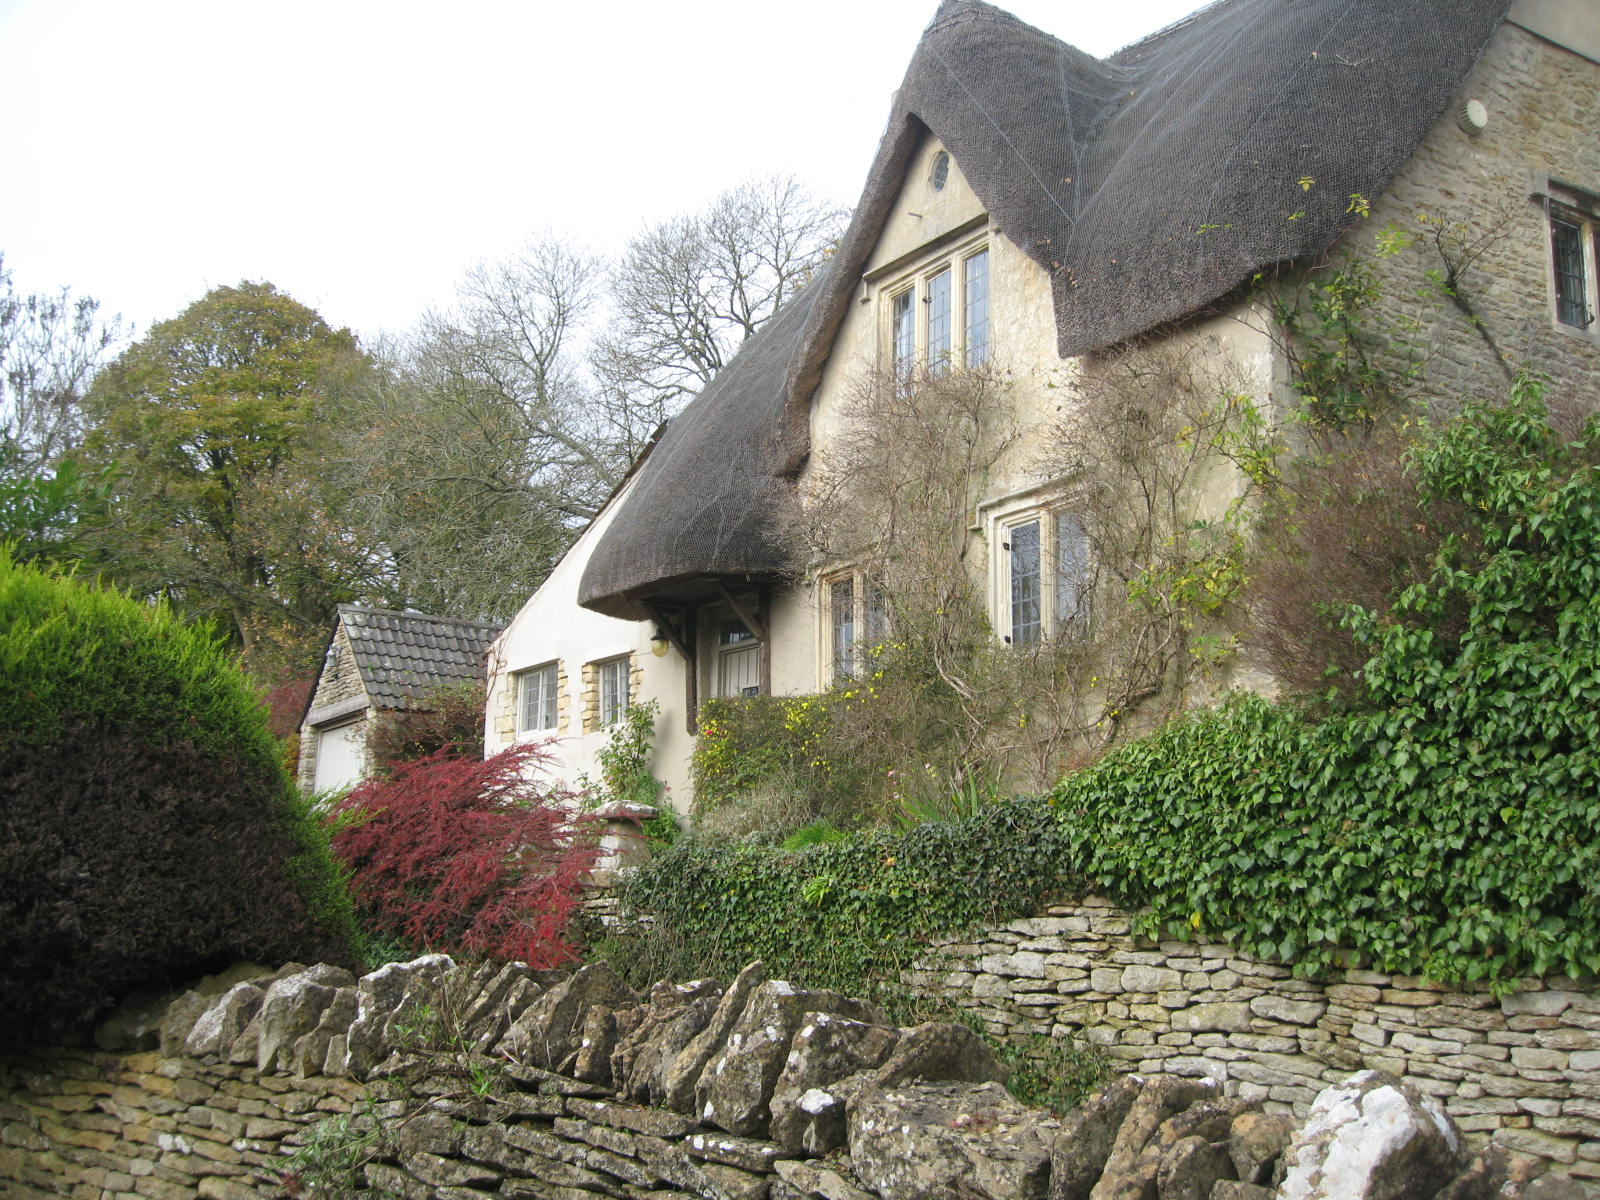 A Thatched Cottage Walking In To Castle Combe The Cotswolds Photo By Me